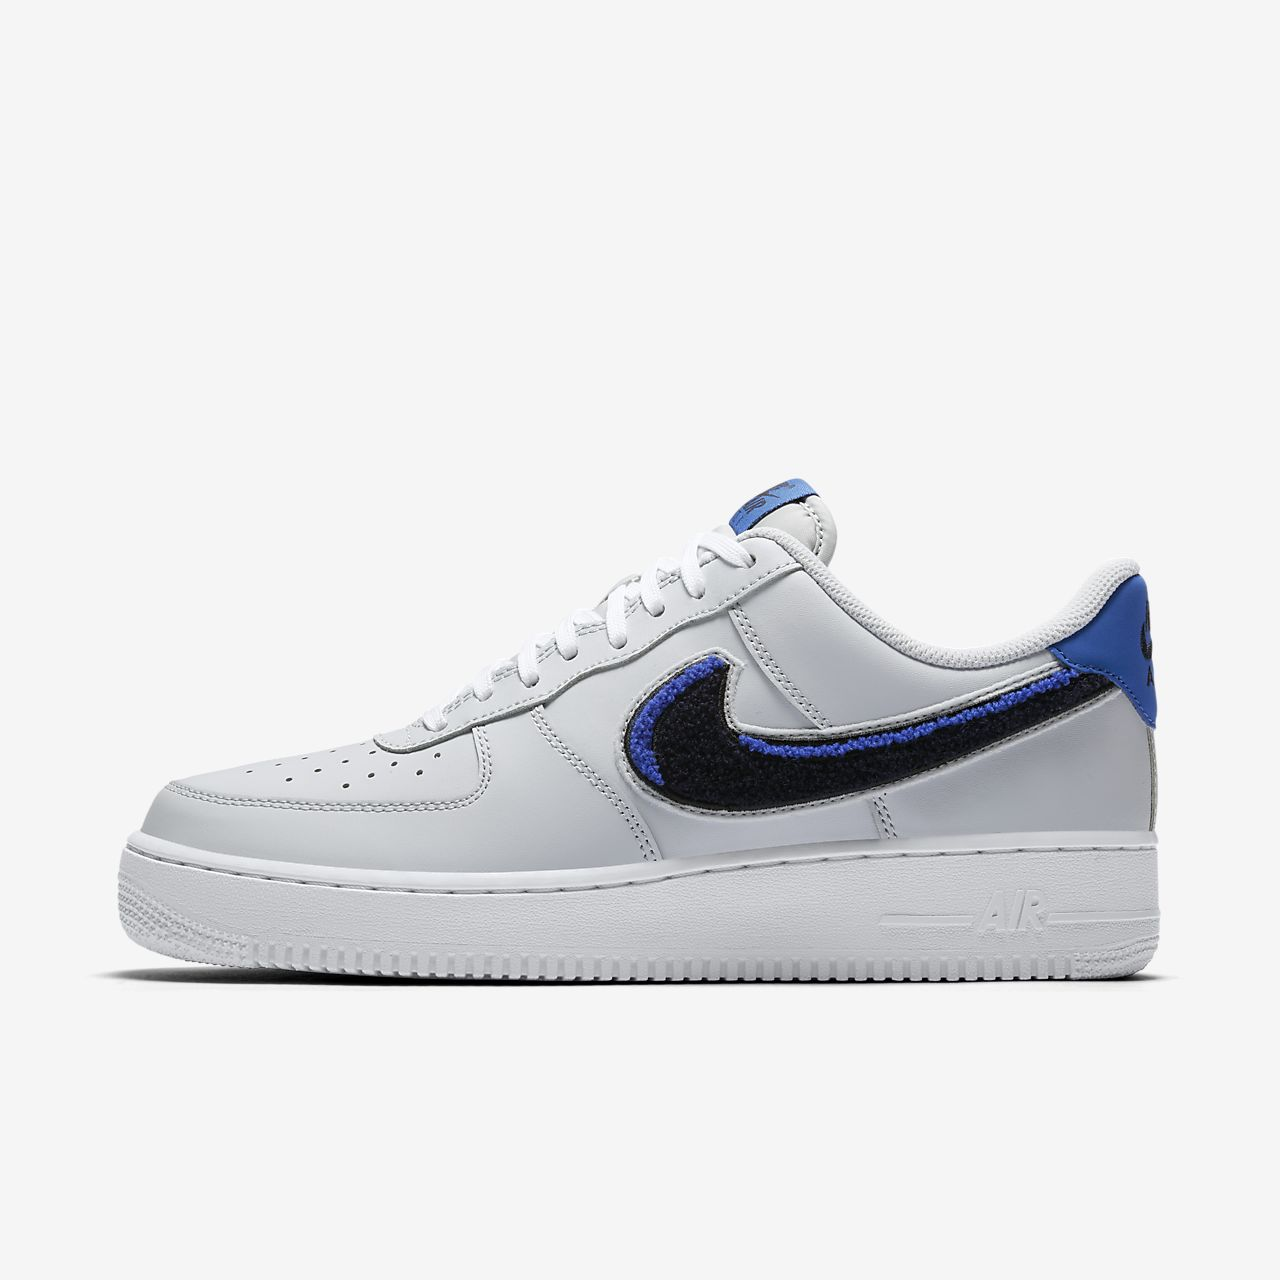 the latest 2401d b48b6 ... Chaussure Nike Air Force 1 07 LV8 pour Homme .